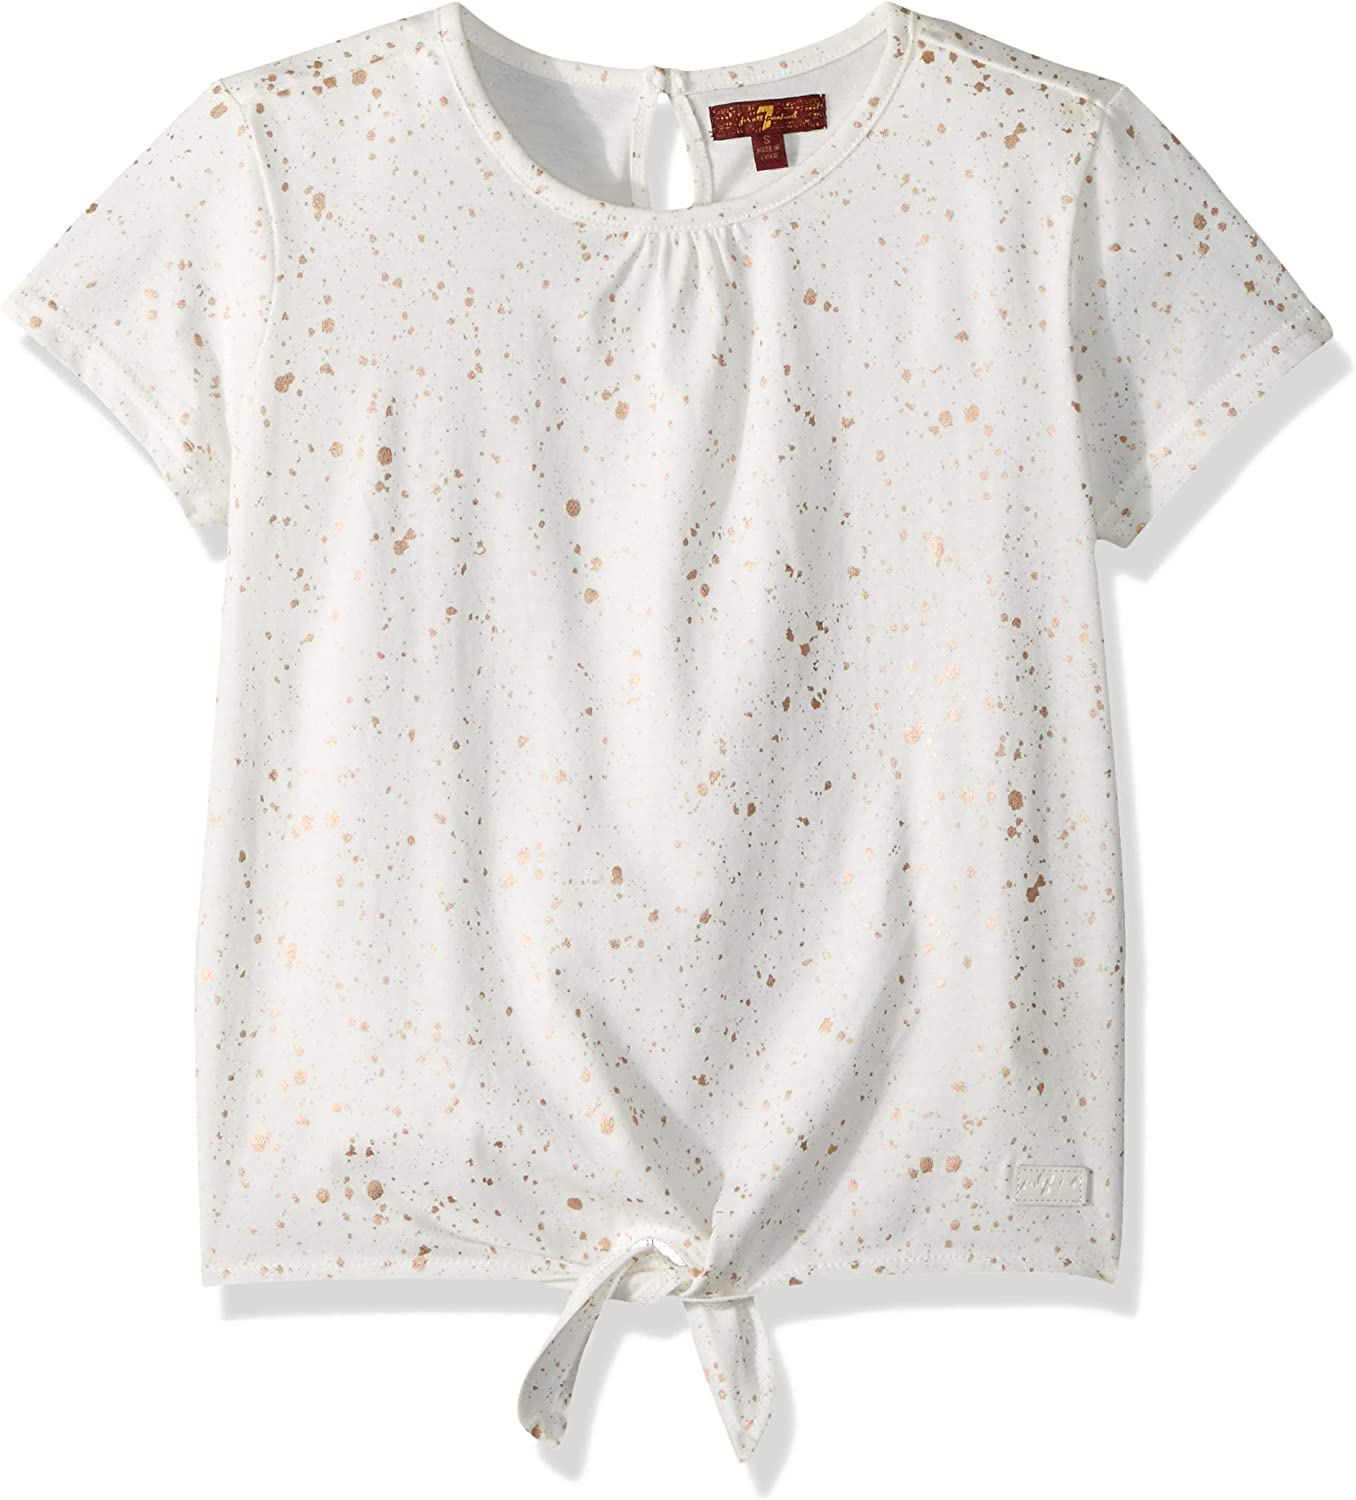 7 For All Mankind Girls Tie Front Tee